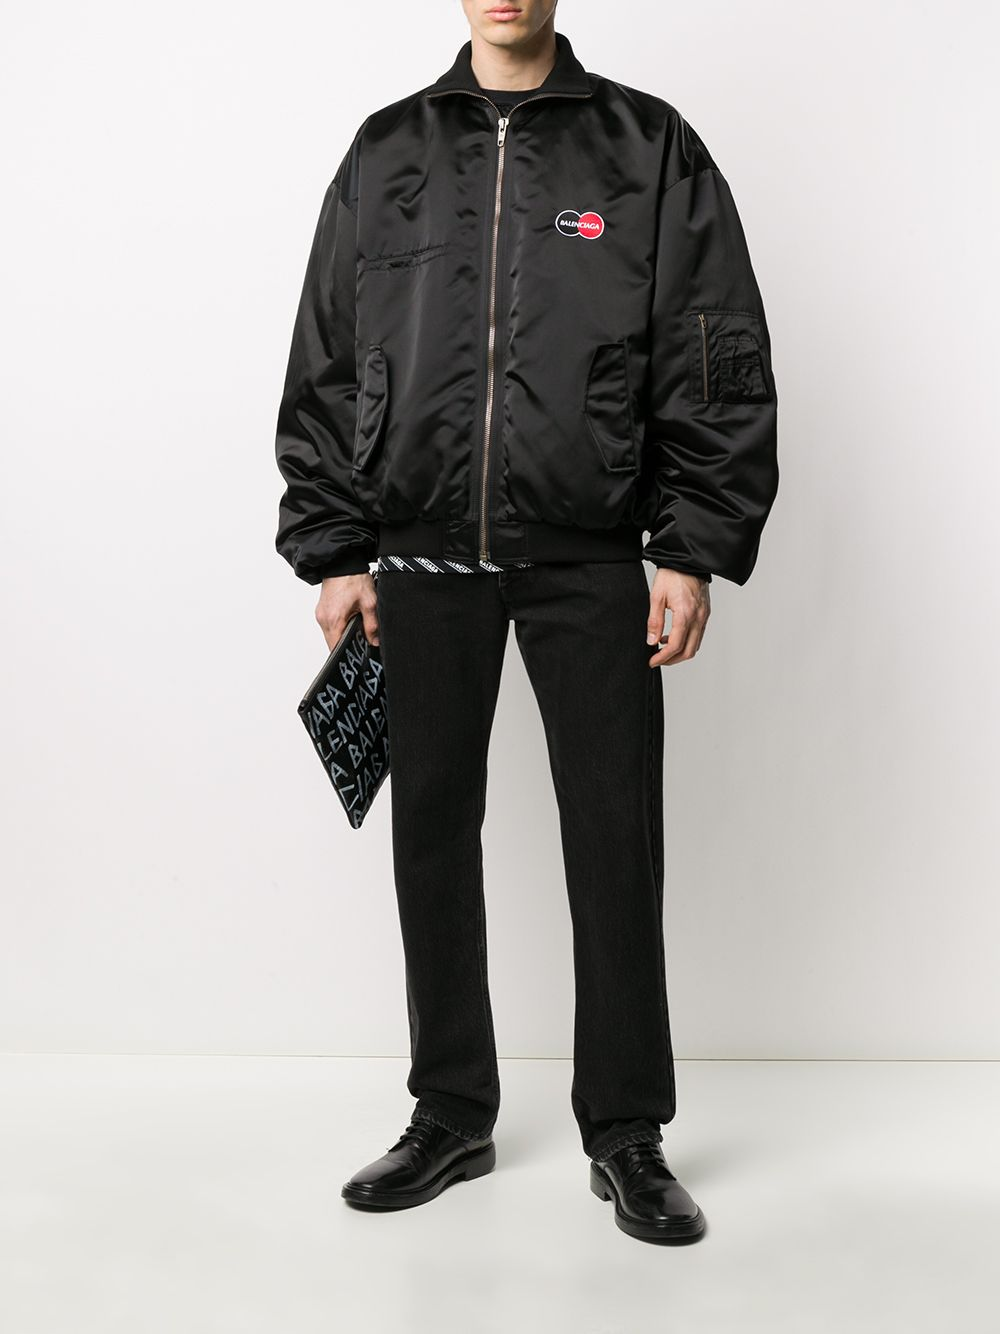 Balenciaga uniform logo jacket black